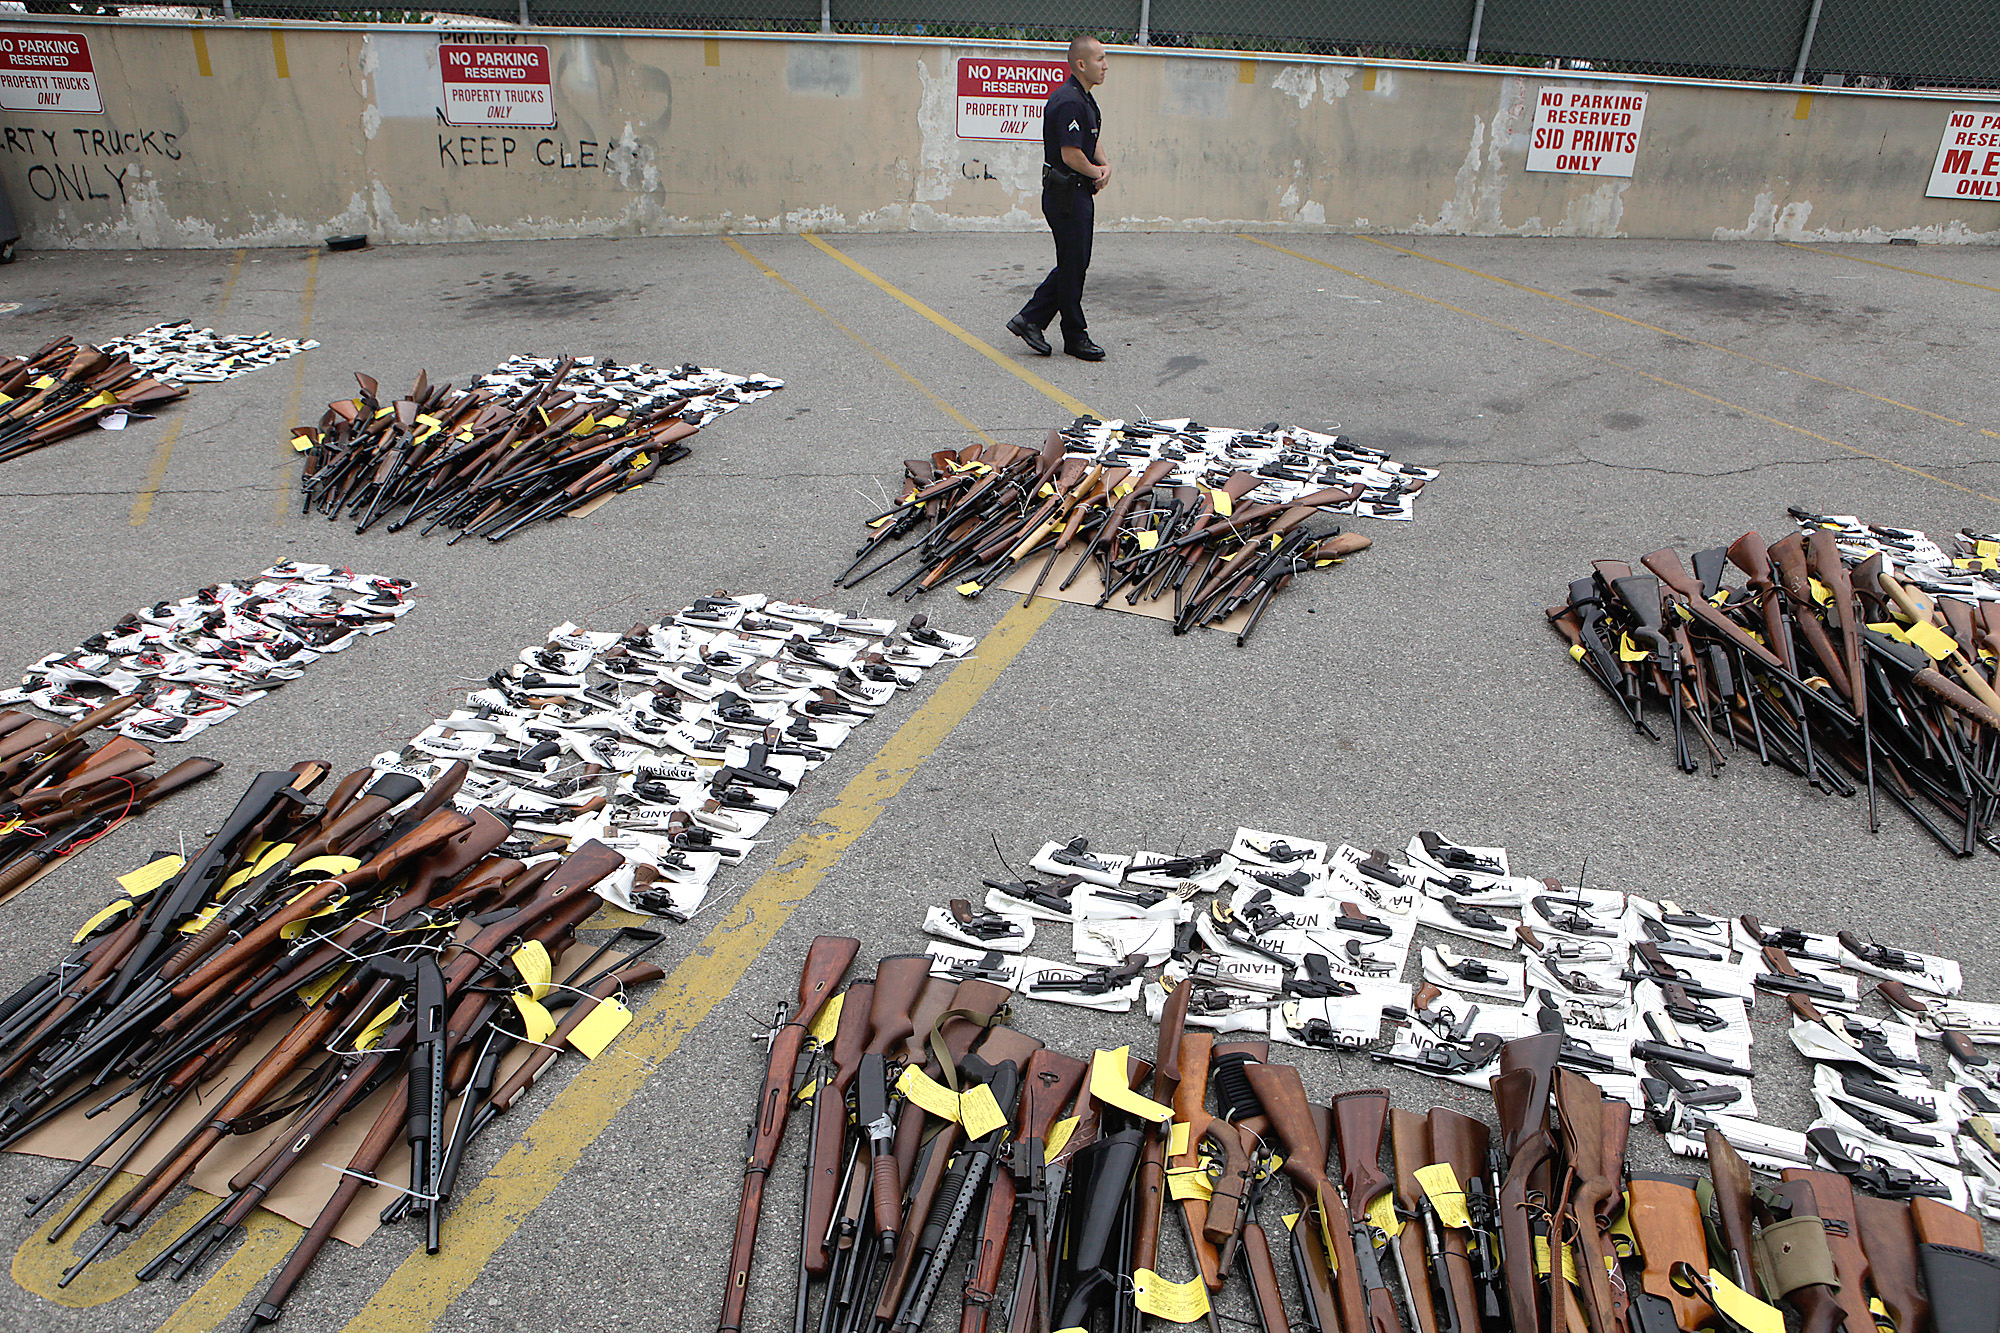 LAPD officer Manuel Ramirez stands guard near some of the nearly 1,700 weapons turned over the weekend at a news conference on May 11, 2009.